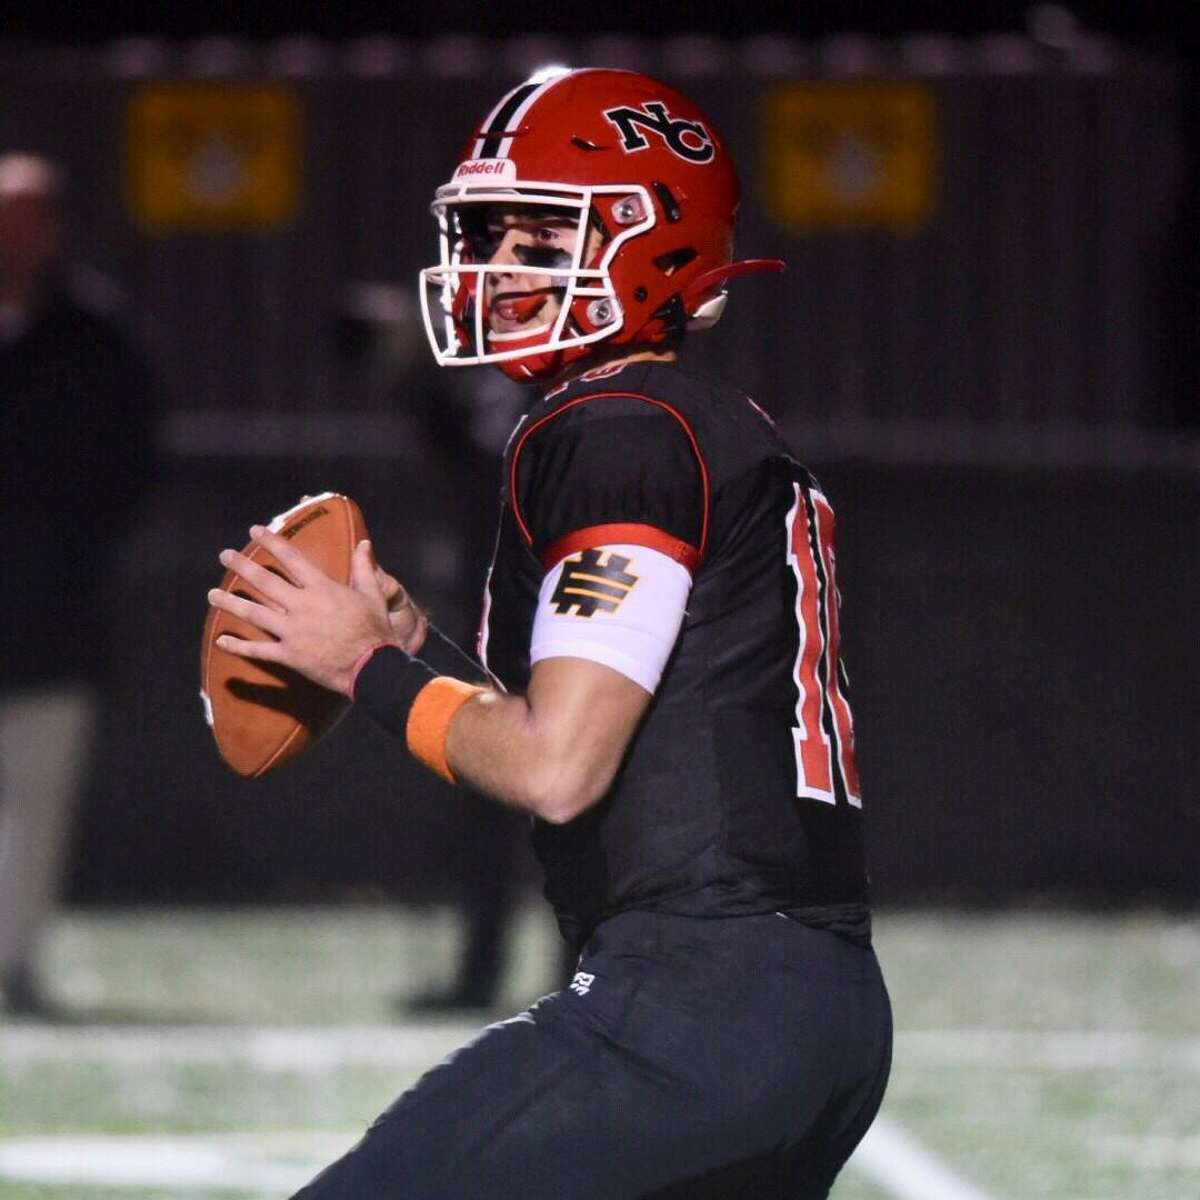 New Canaan's Drew Pyne looks downfield for a receiver during the Rams' football game against Wilton at Dunning Field on Friday.